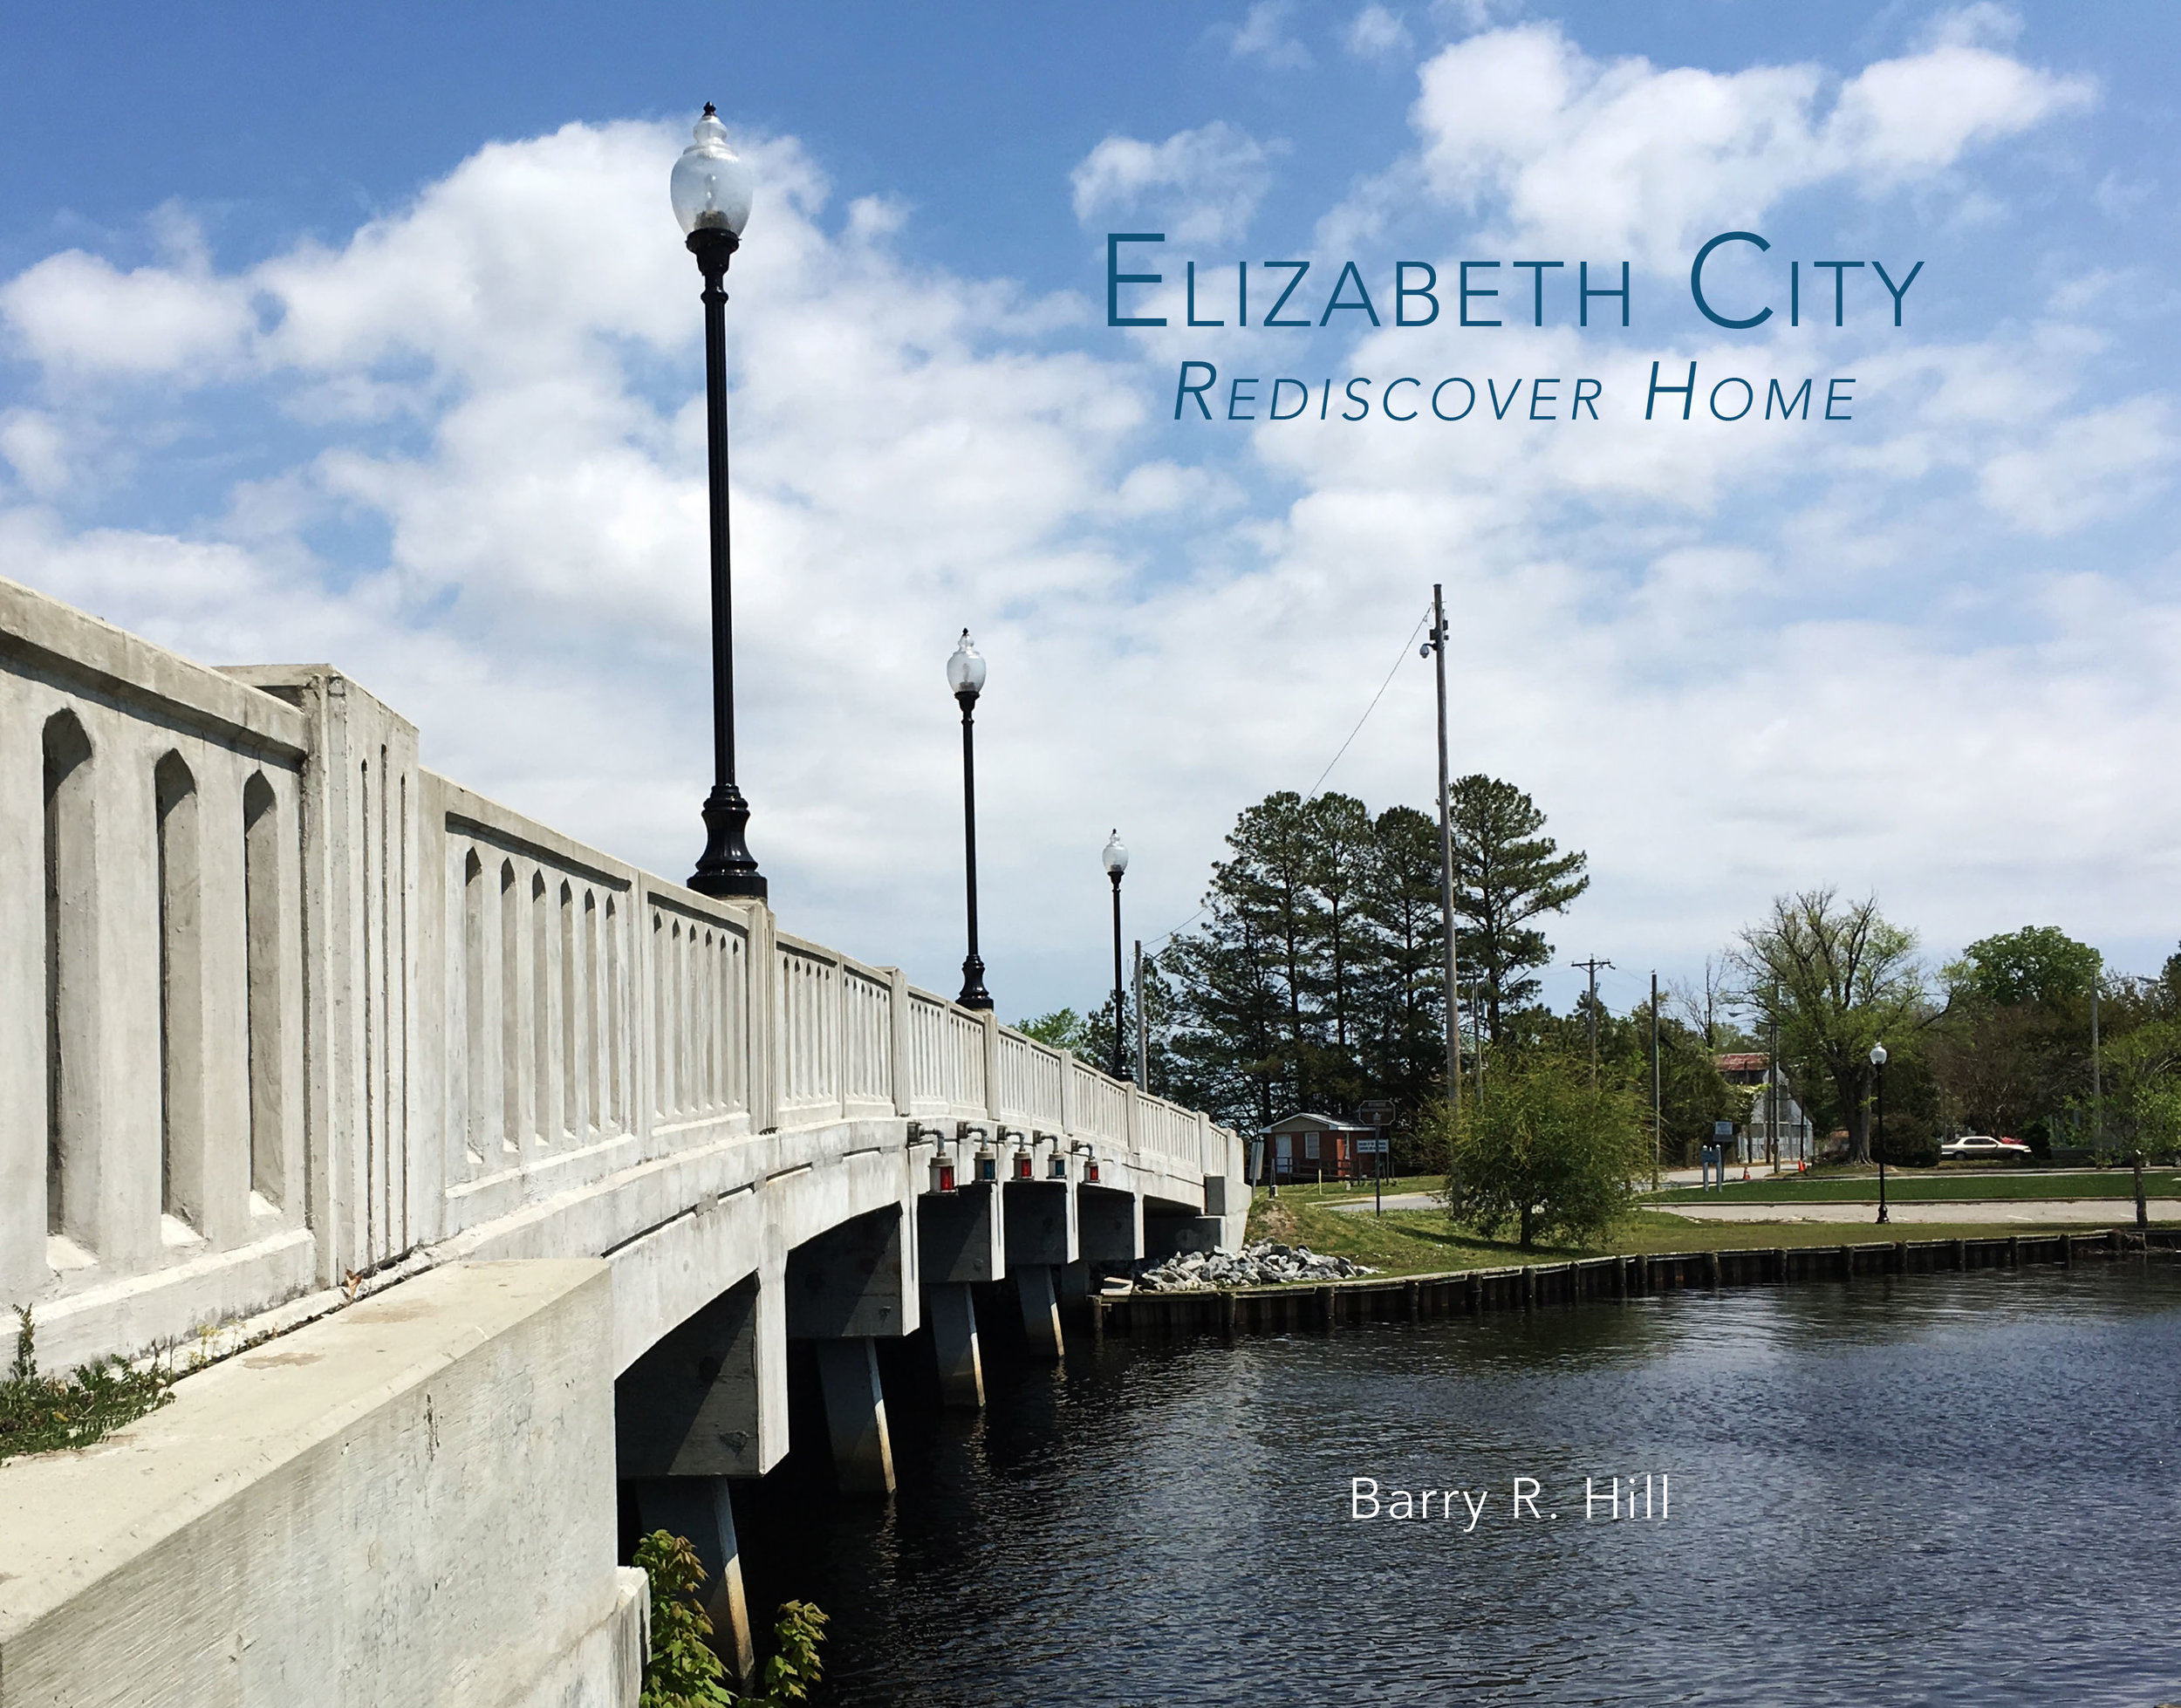 Elizabeth City Rediscover Home - Most people never really see their hometown, being too absorbed in daily life. You take things for granted and completely miss the beautiful architecture, scenery, and history. This book presents a photographic journey into the rich heritage of Elizabeth City, North Carolina, a quiet, unassuming, thoroughly charming town on the Pasquotank River.